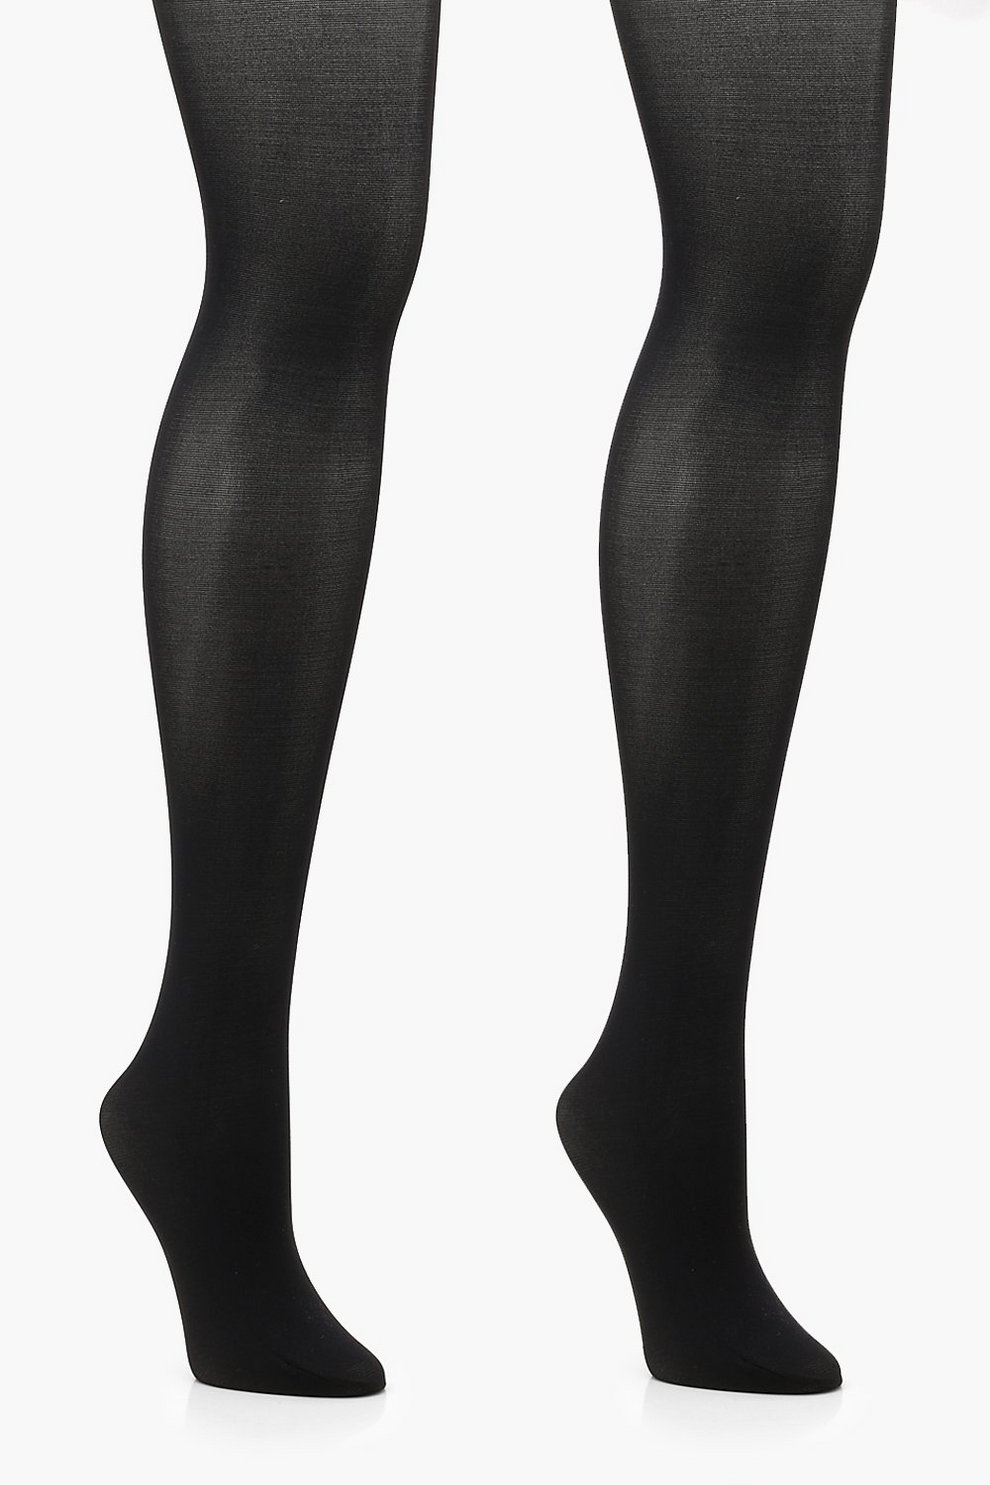 cb00149ebed78 Womens Black Plus 2 Pack 40 Denier Opaque Tights